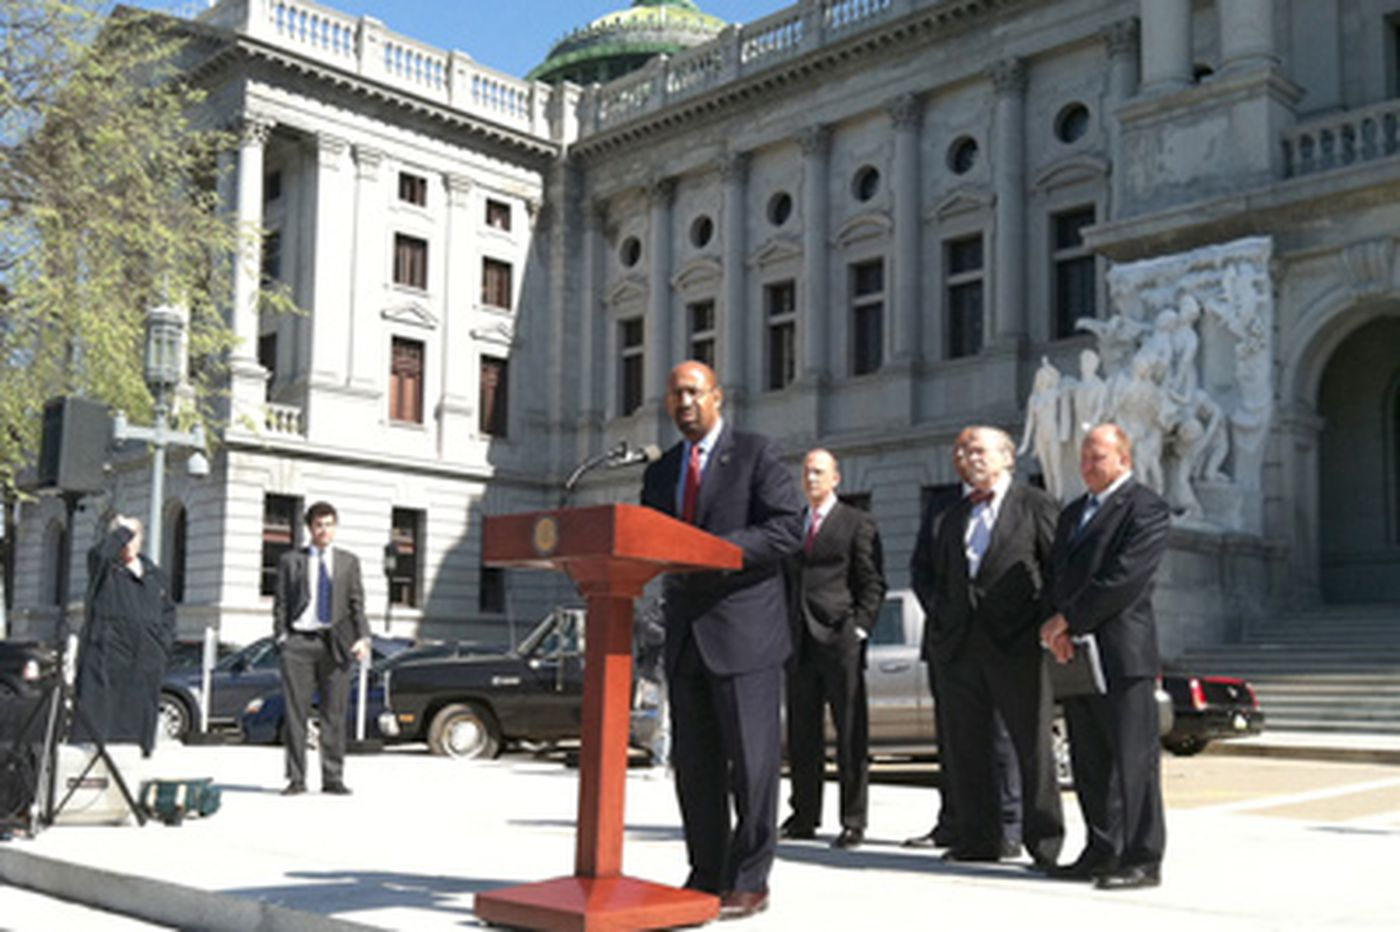 Nutter joins mayors in Harrisburg to garner support for local gun laws